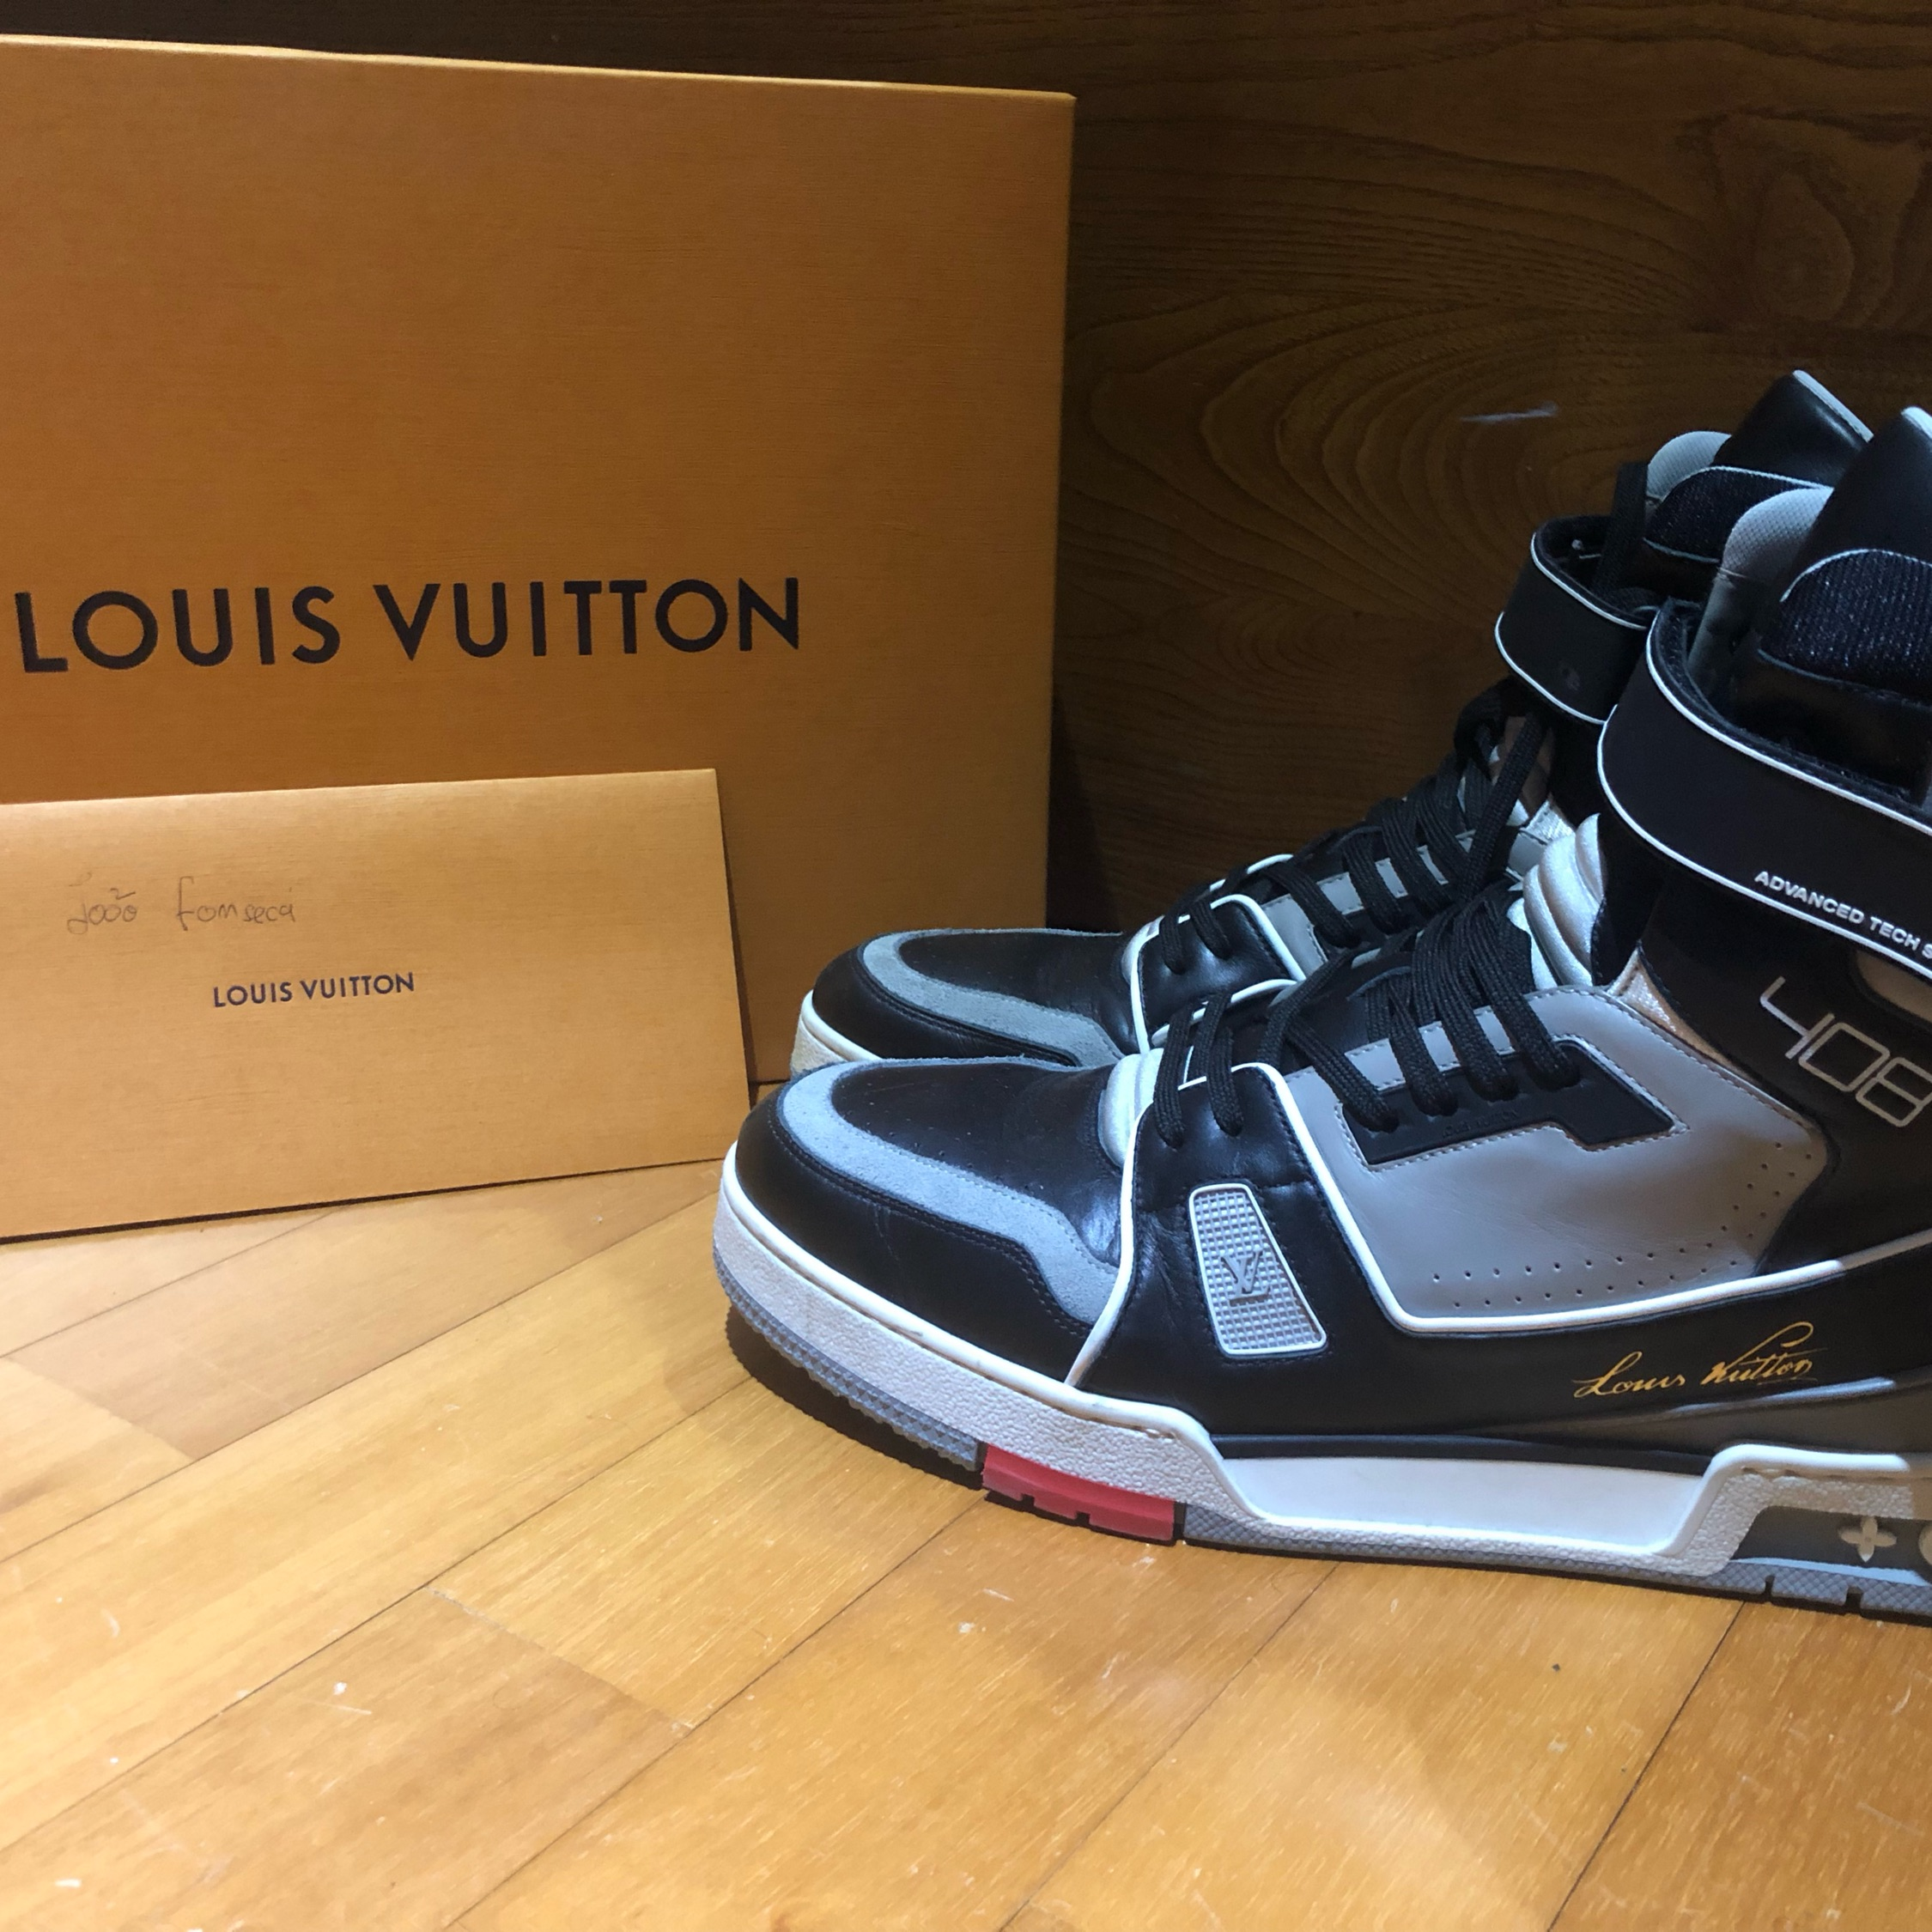 bd432a3f047 Louis Vuitton Lv Trainer Sneakers